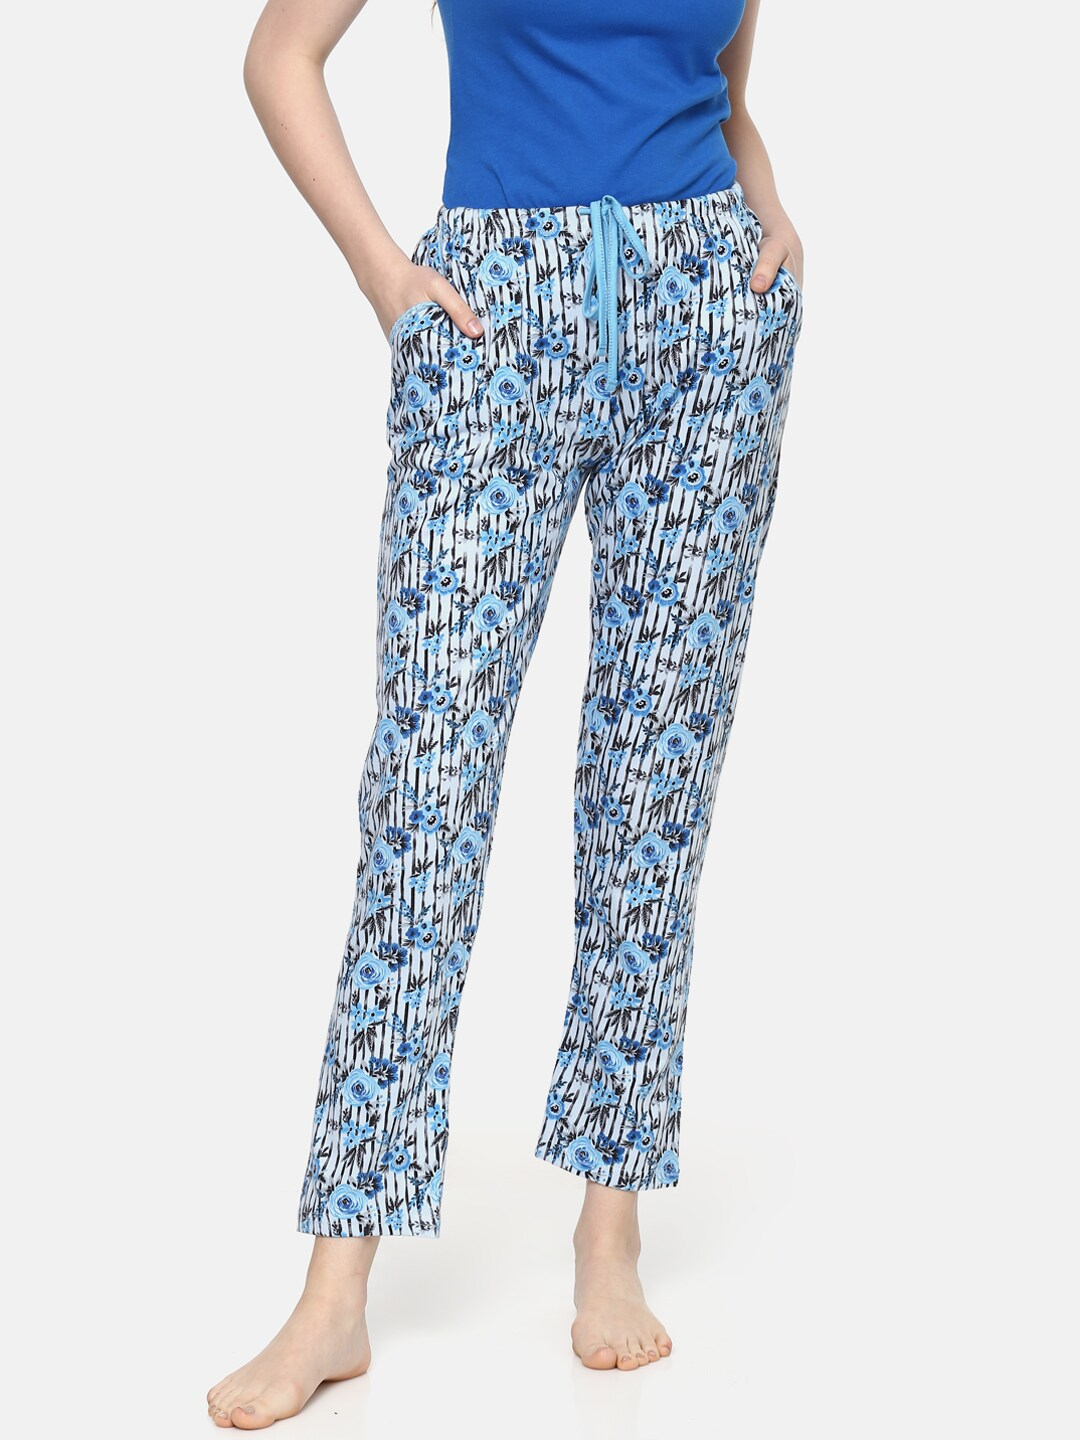 b613f51ff128 Pajamas - Buy Pajamas for Men   Women Online in India